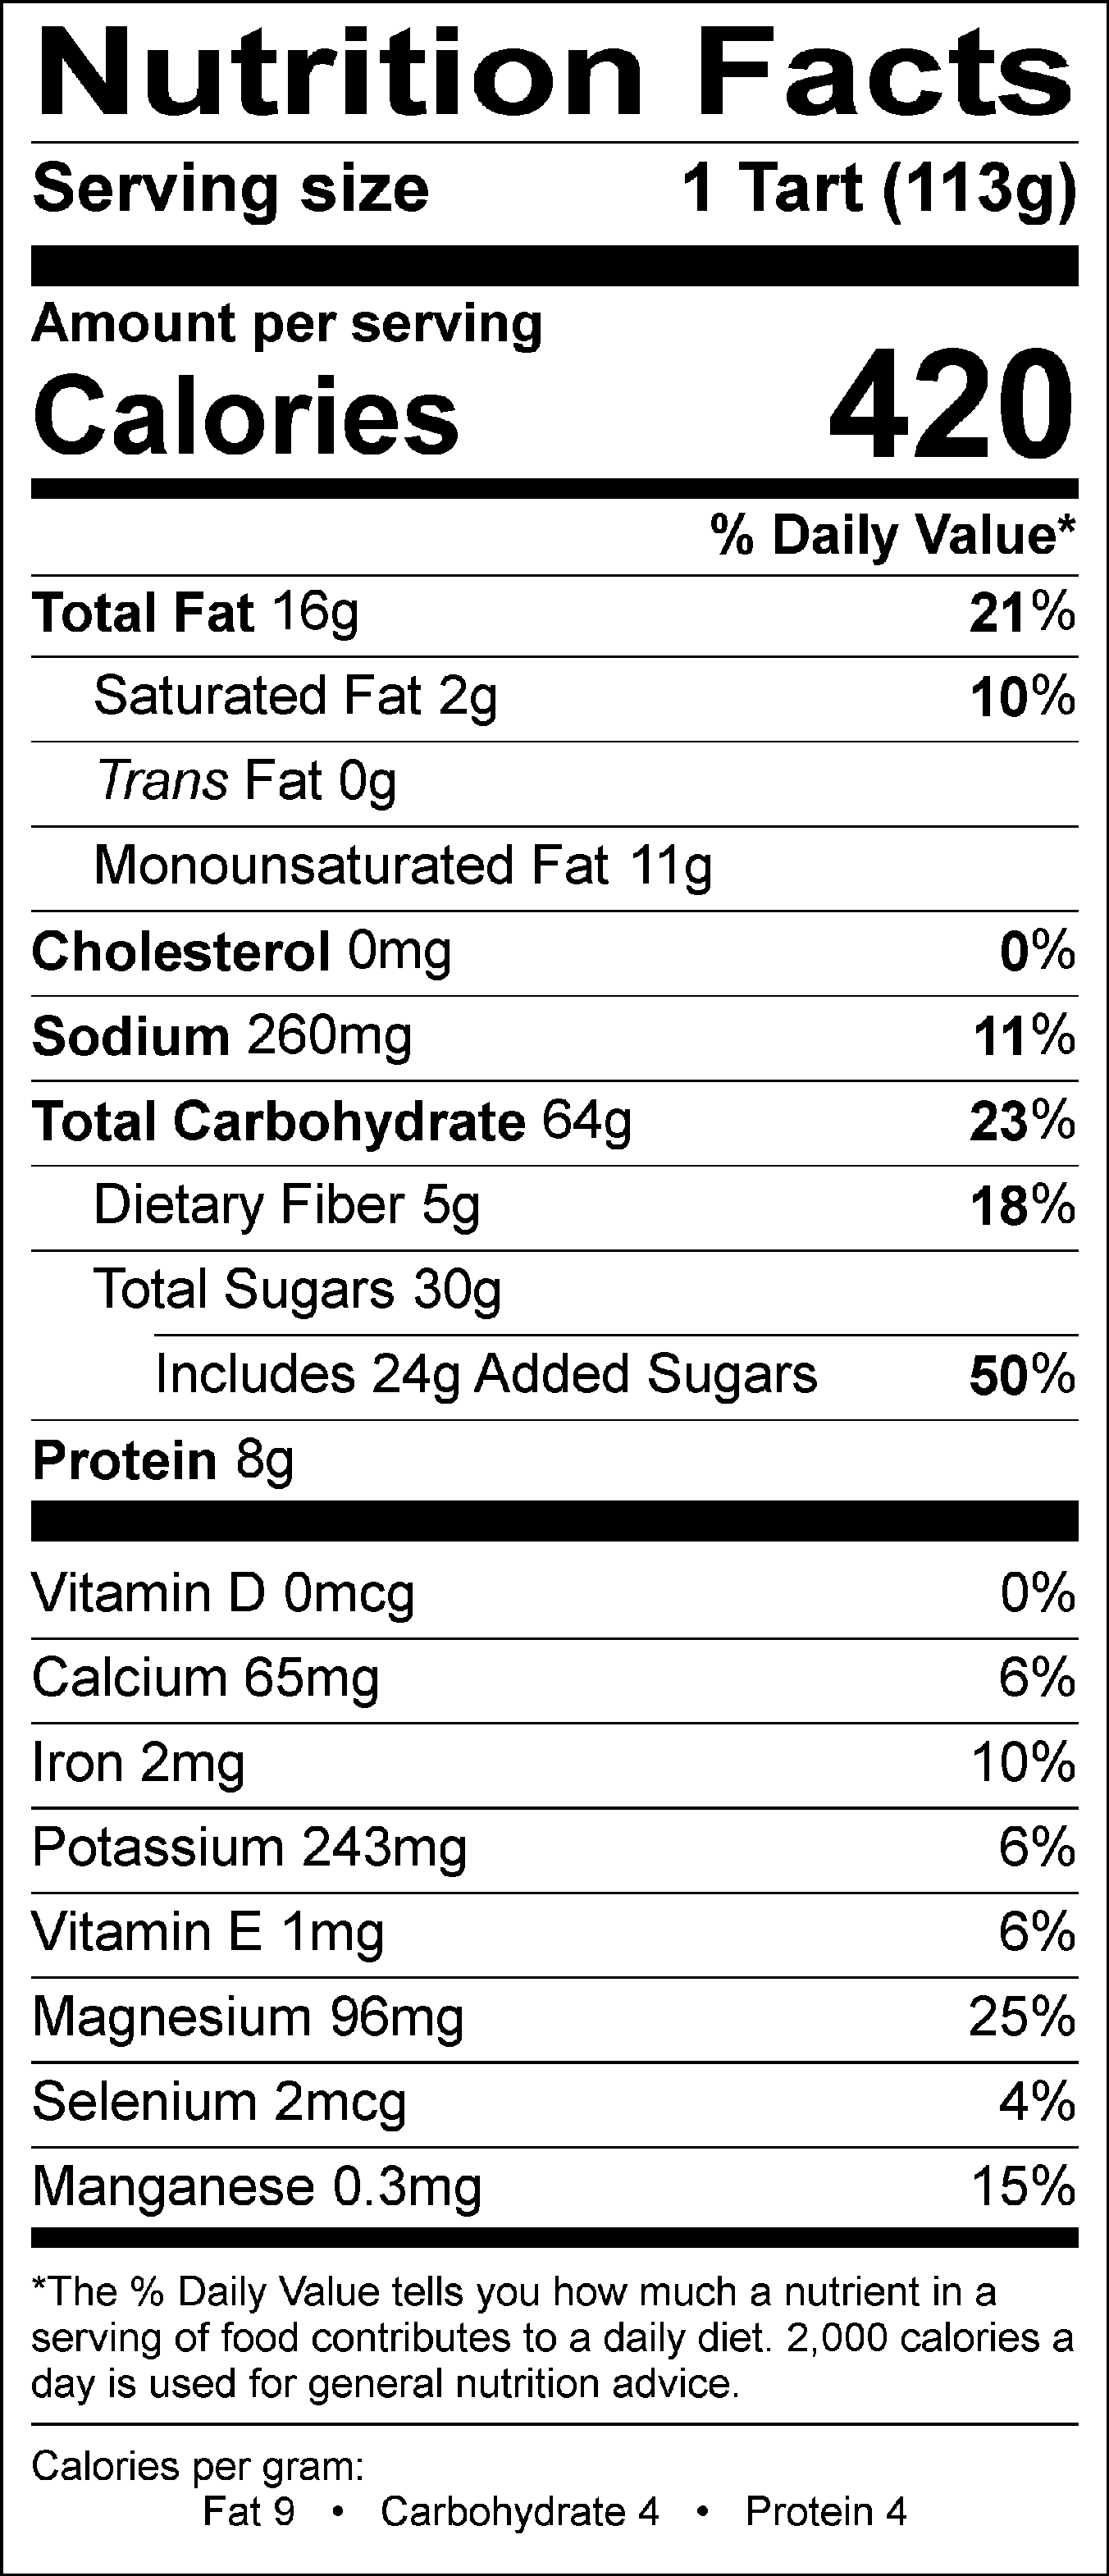 Nutrition Facts 2016.png